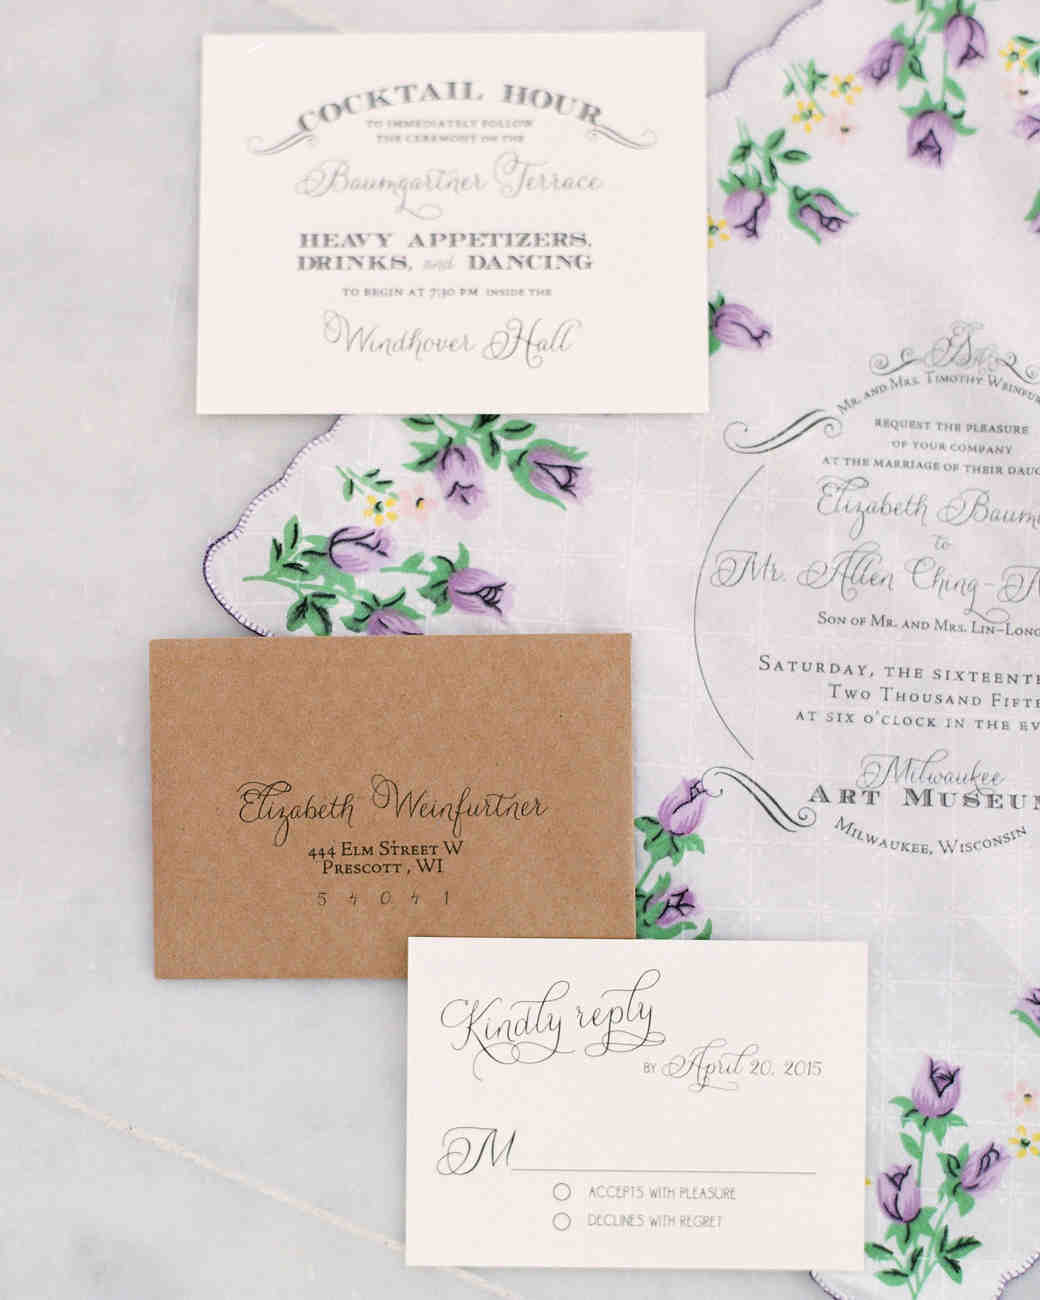 libby-allen-wedding-invitation-006-s112487-0116.jpg